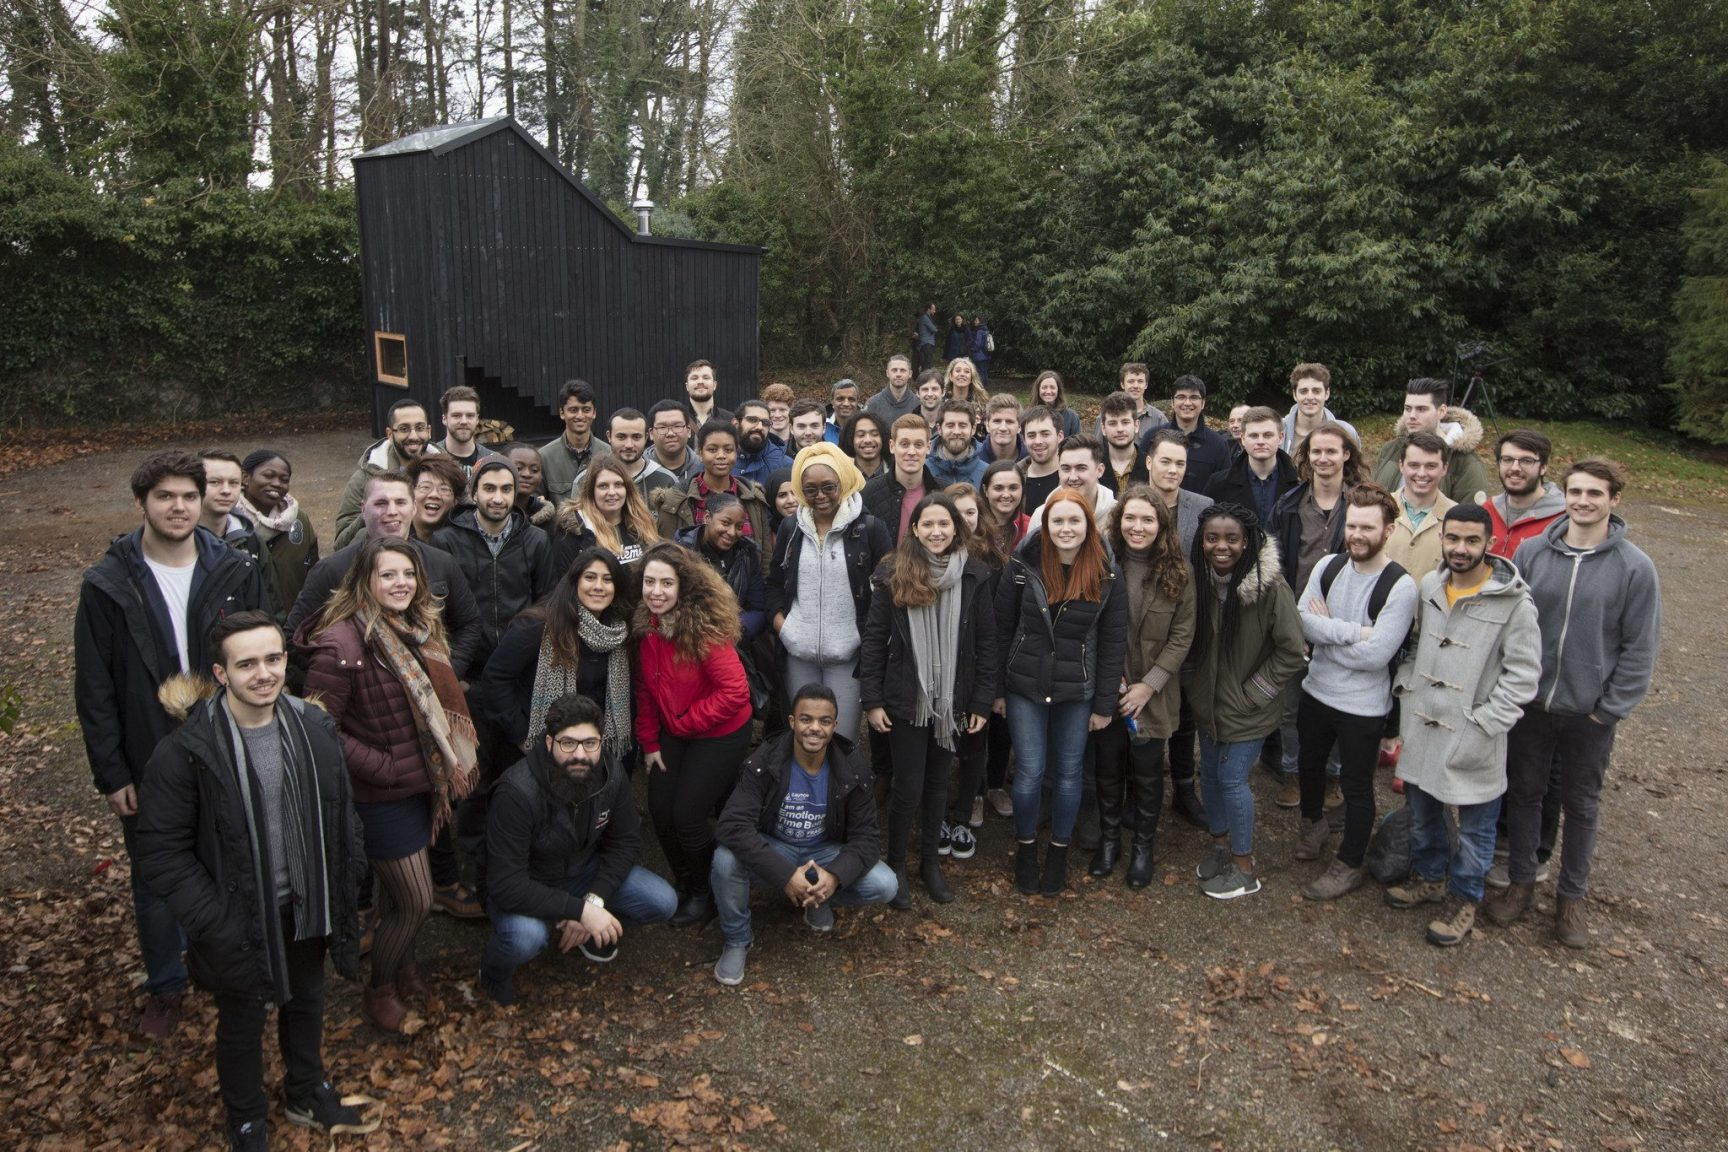 Architecture students create unique camping experience